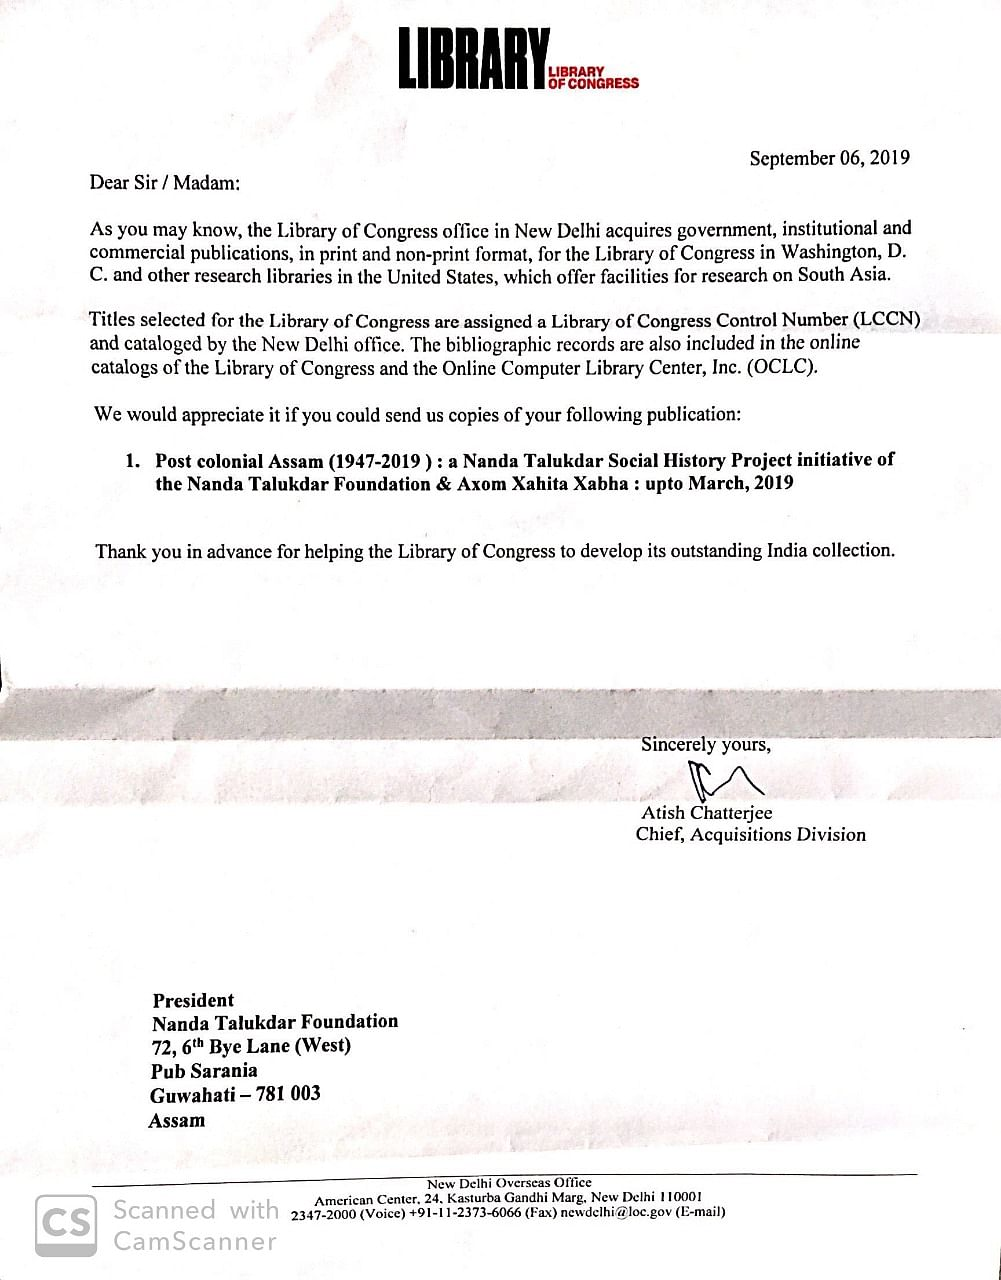 Copy of the letter from Library of Congress received by Assam journalist Mrinal Talukdar